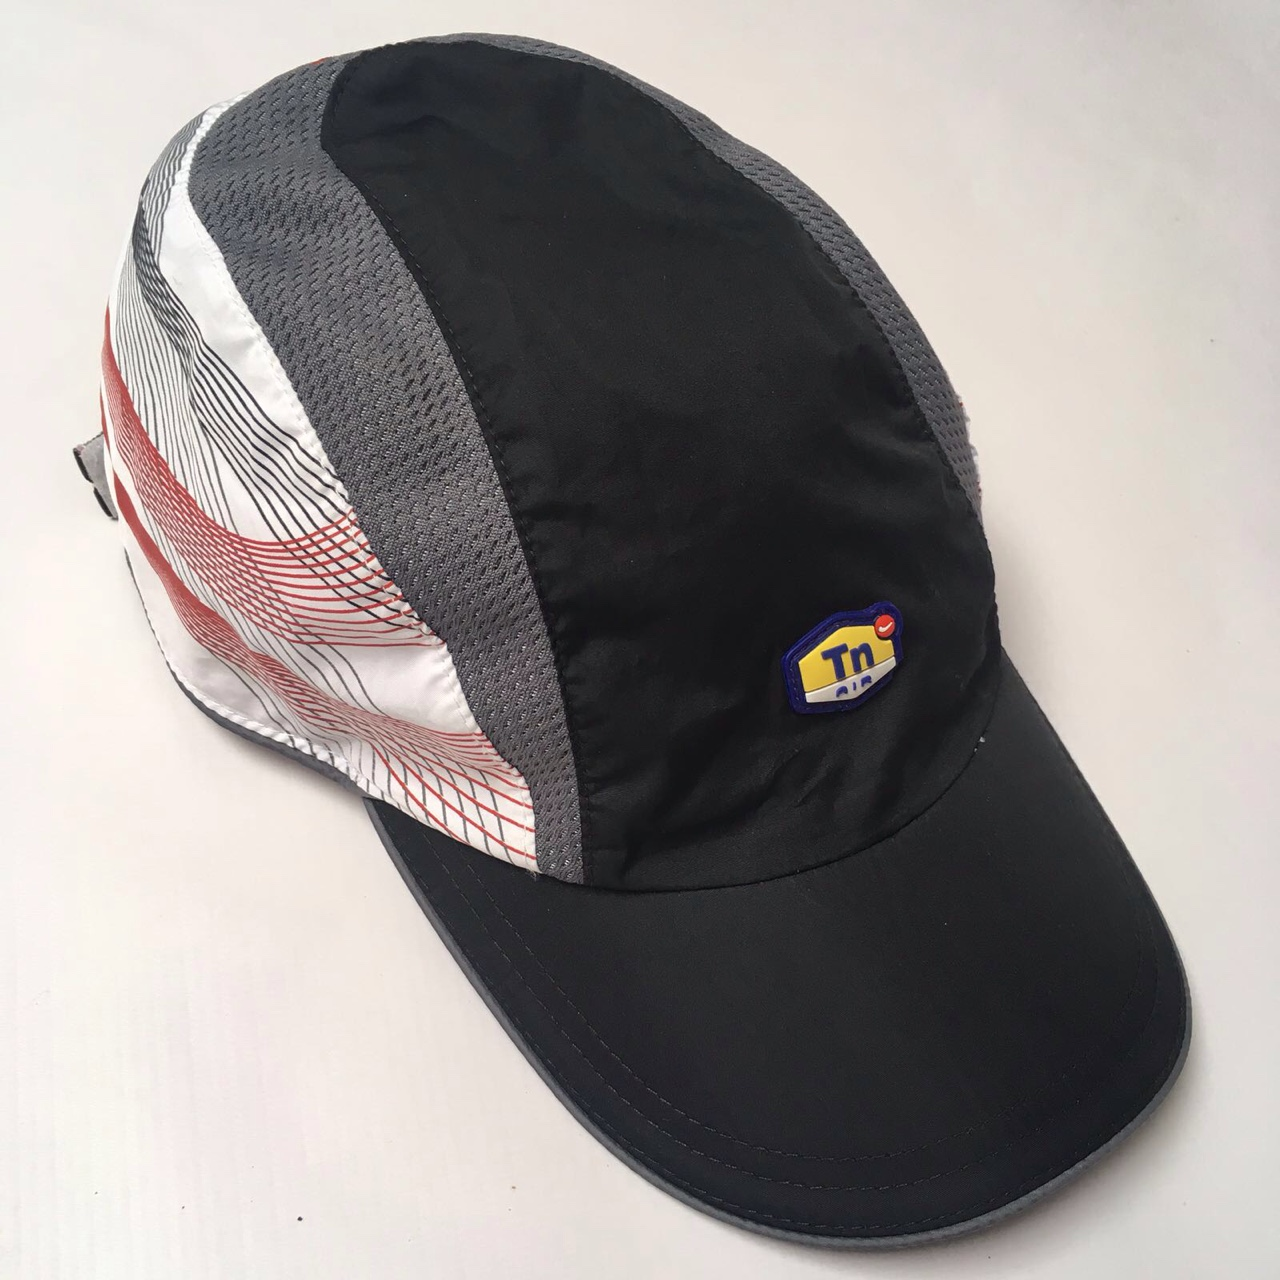 84bcd855e Rare Vintage Nike Tn 5 Panel cap. Like new... - Depop